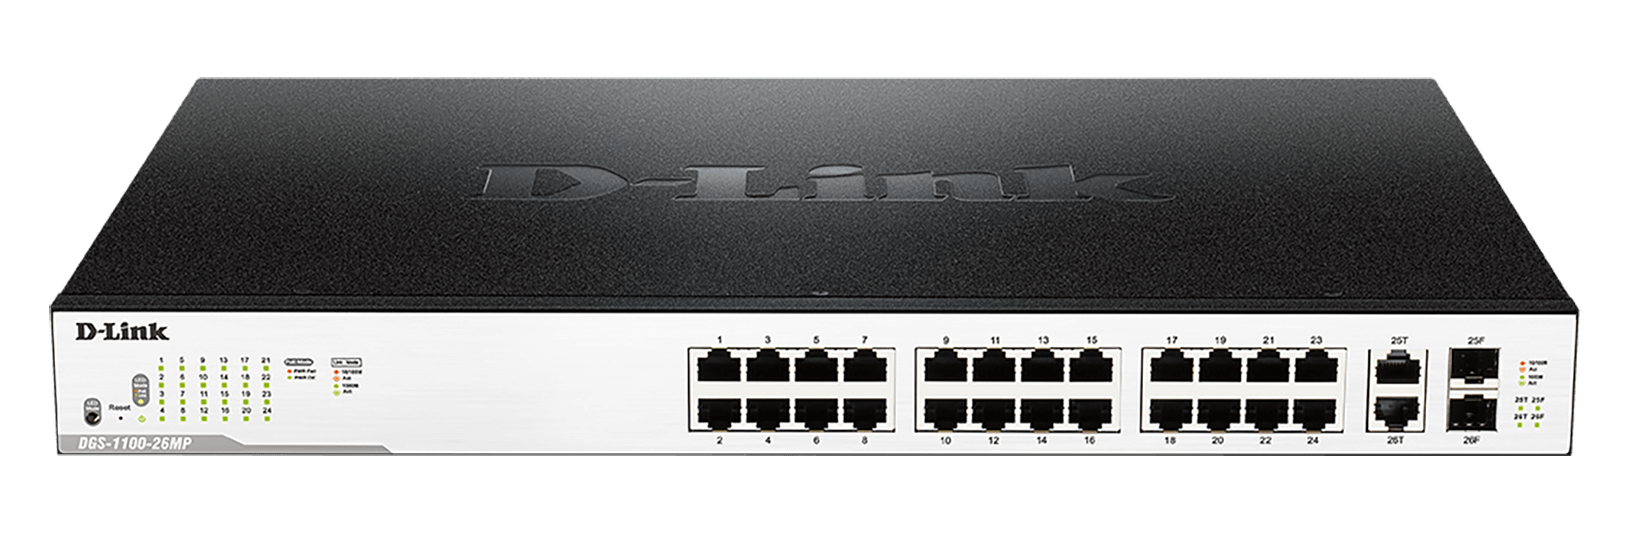 DGS-1100-26MP MaxPoE Smart Switch with SFP ports